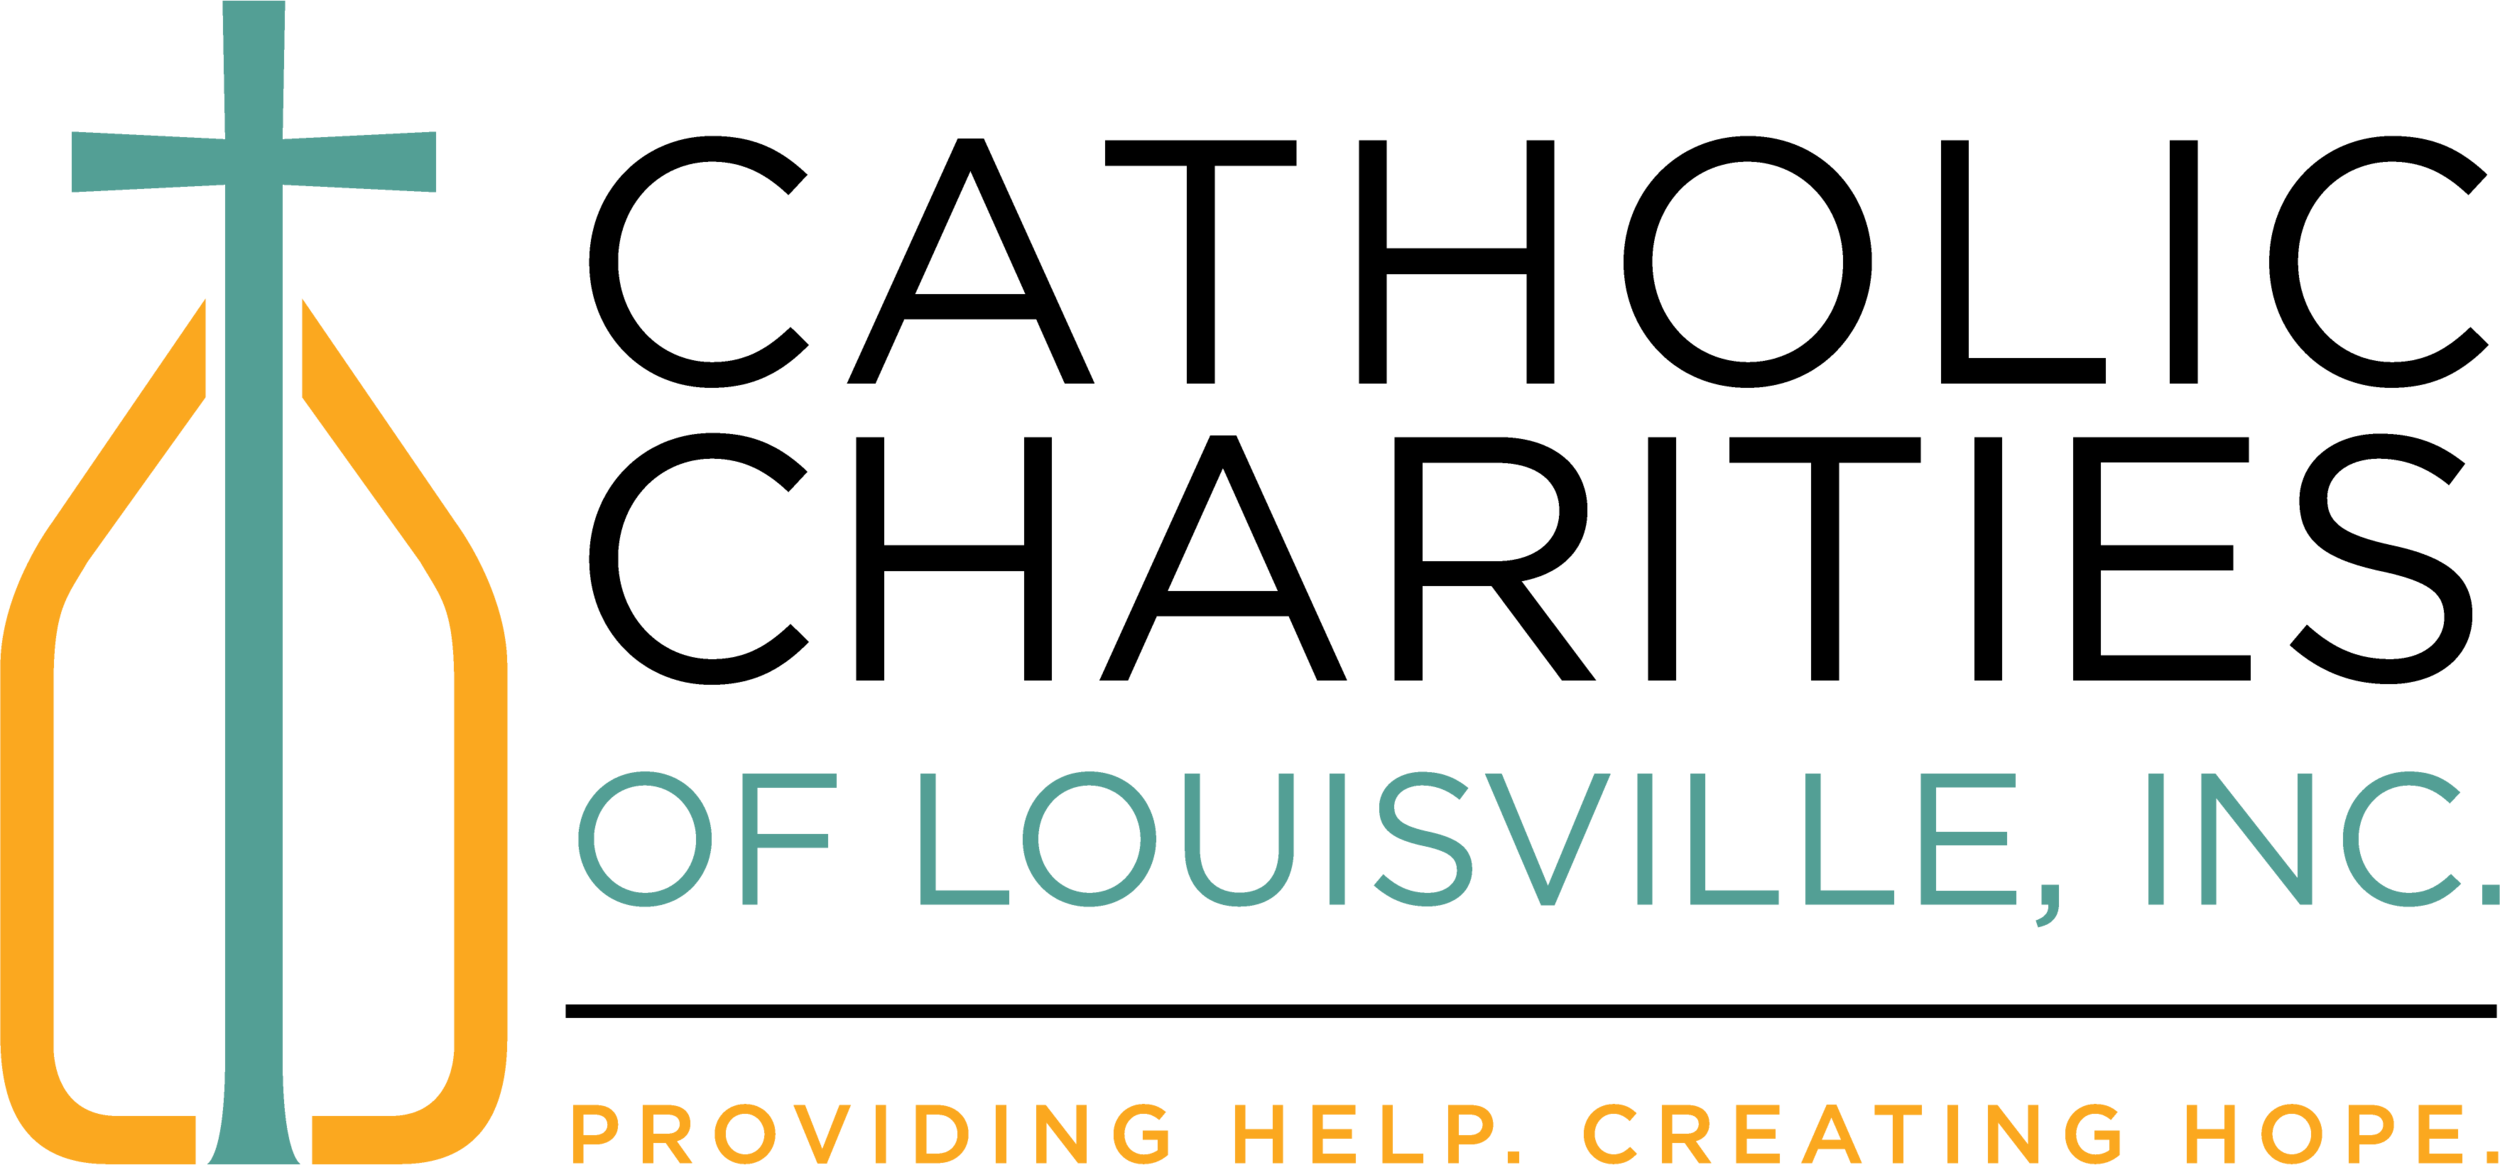 Catholic-Charities-Main-Logo-2017-Black-Teal-Gold.png